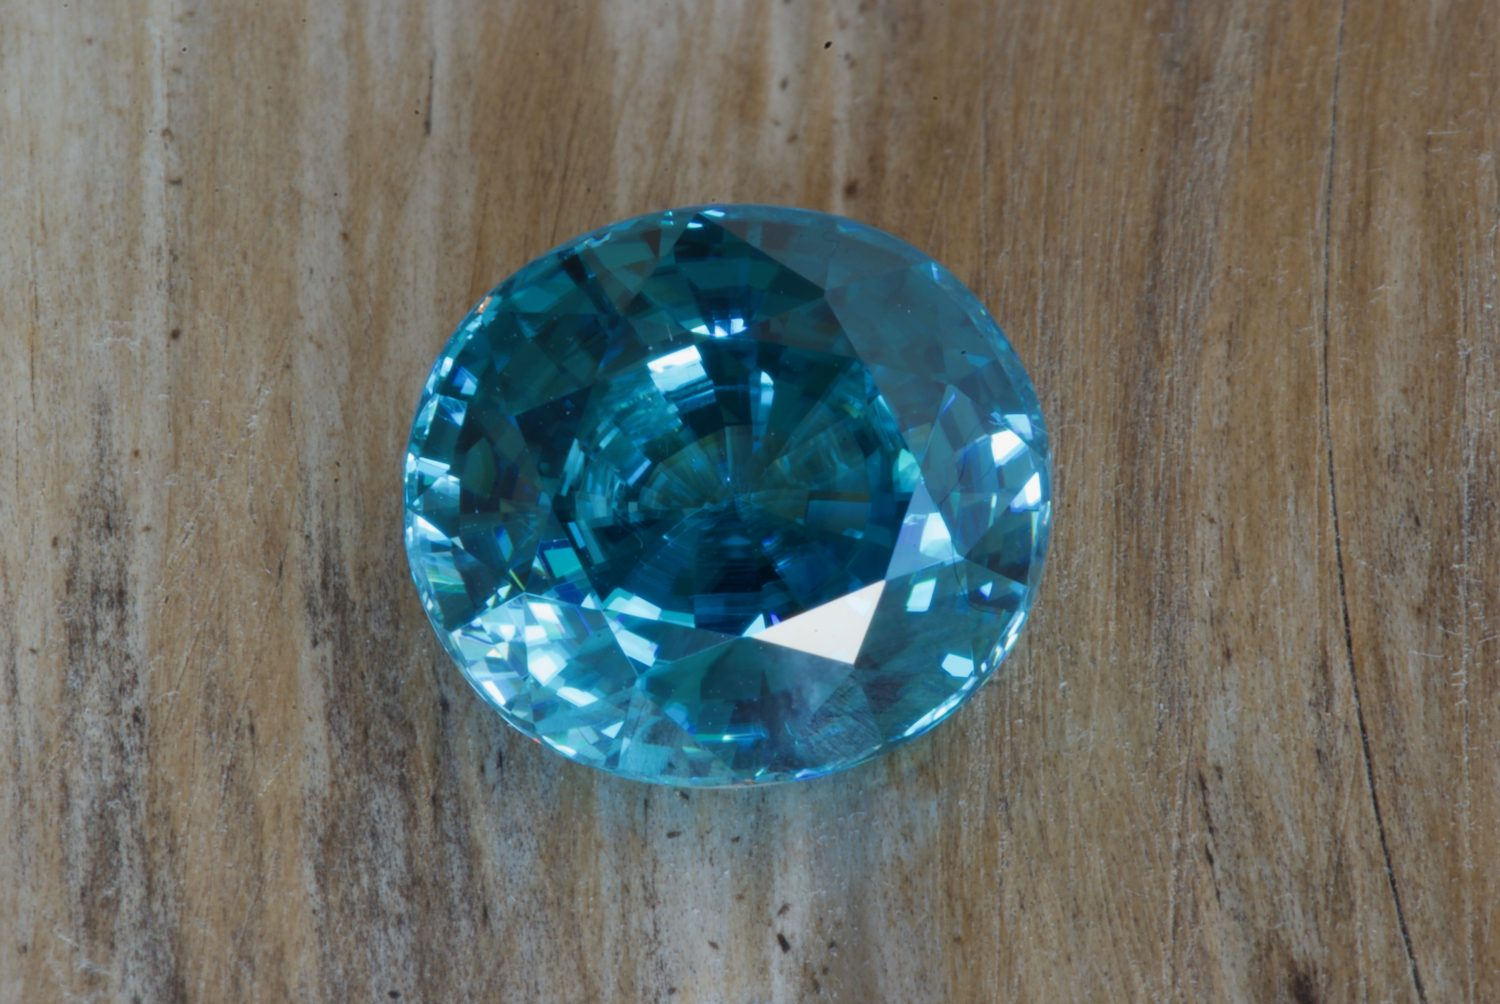 Zircon bleu naturel du Cambodge. 12,17 carats